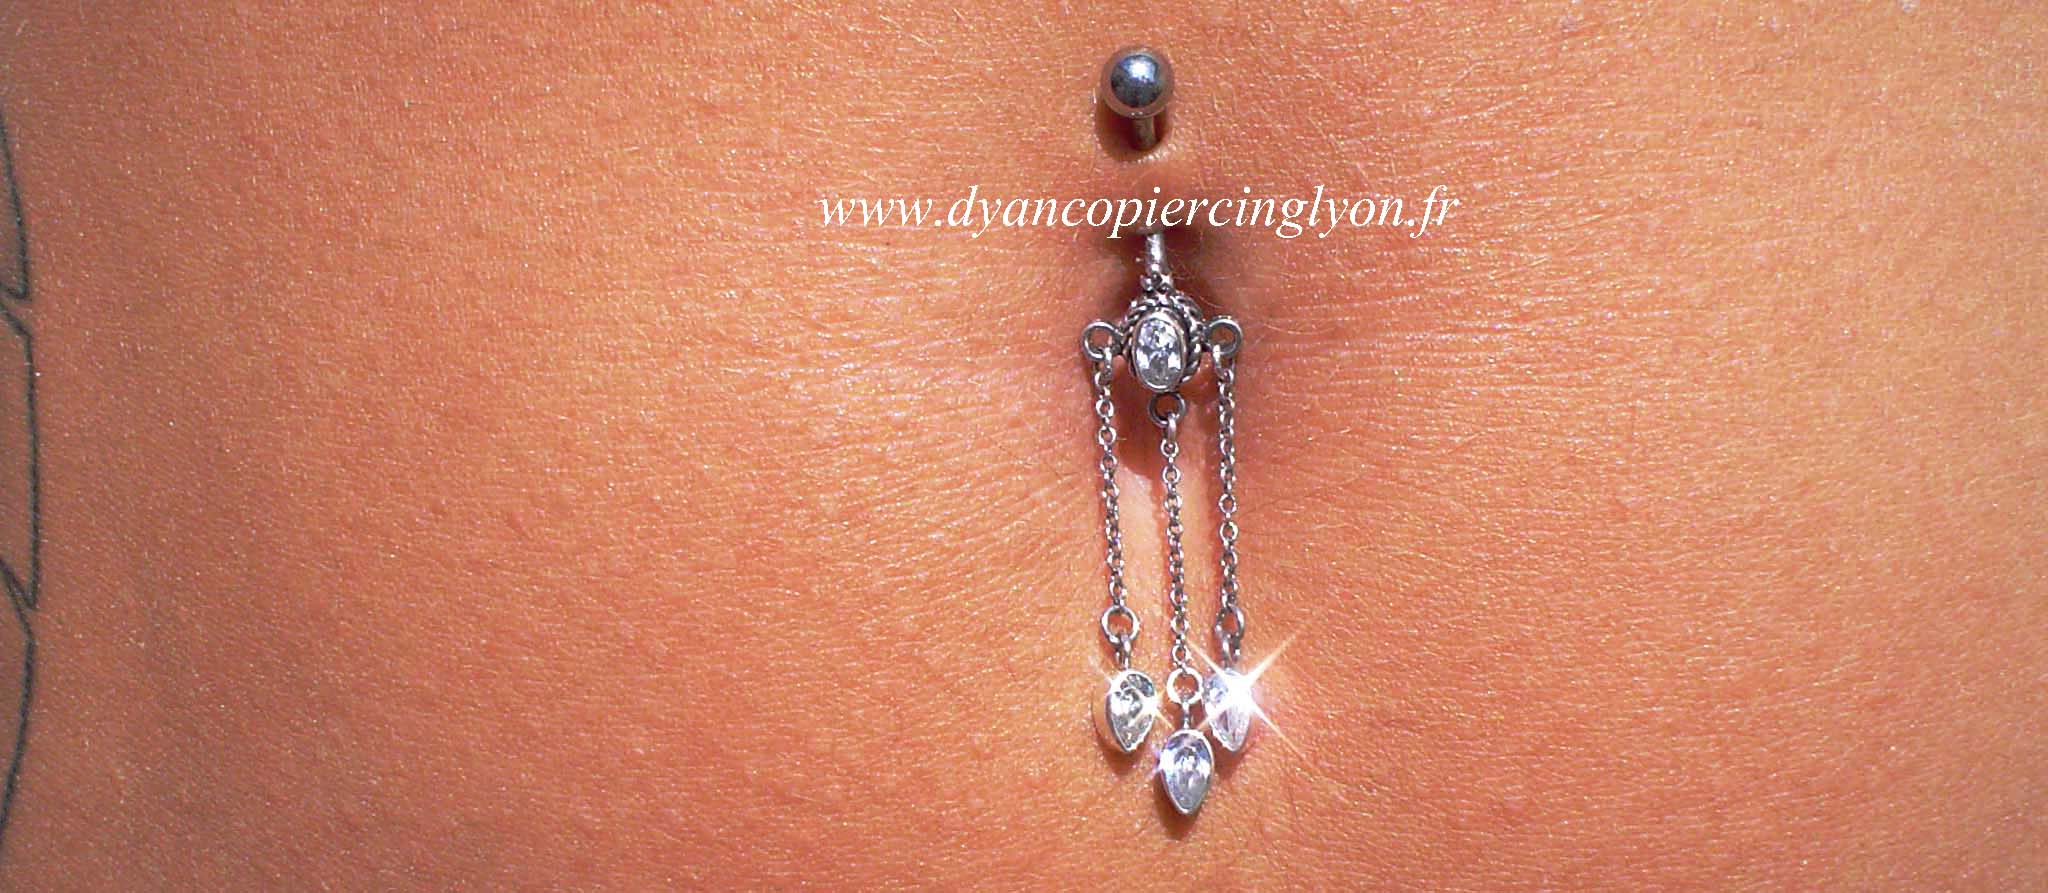 Mystic Jewels Bali Belly Button Rings.jpg